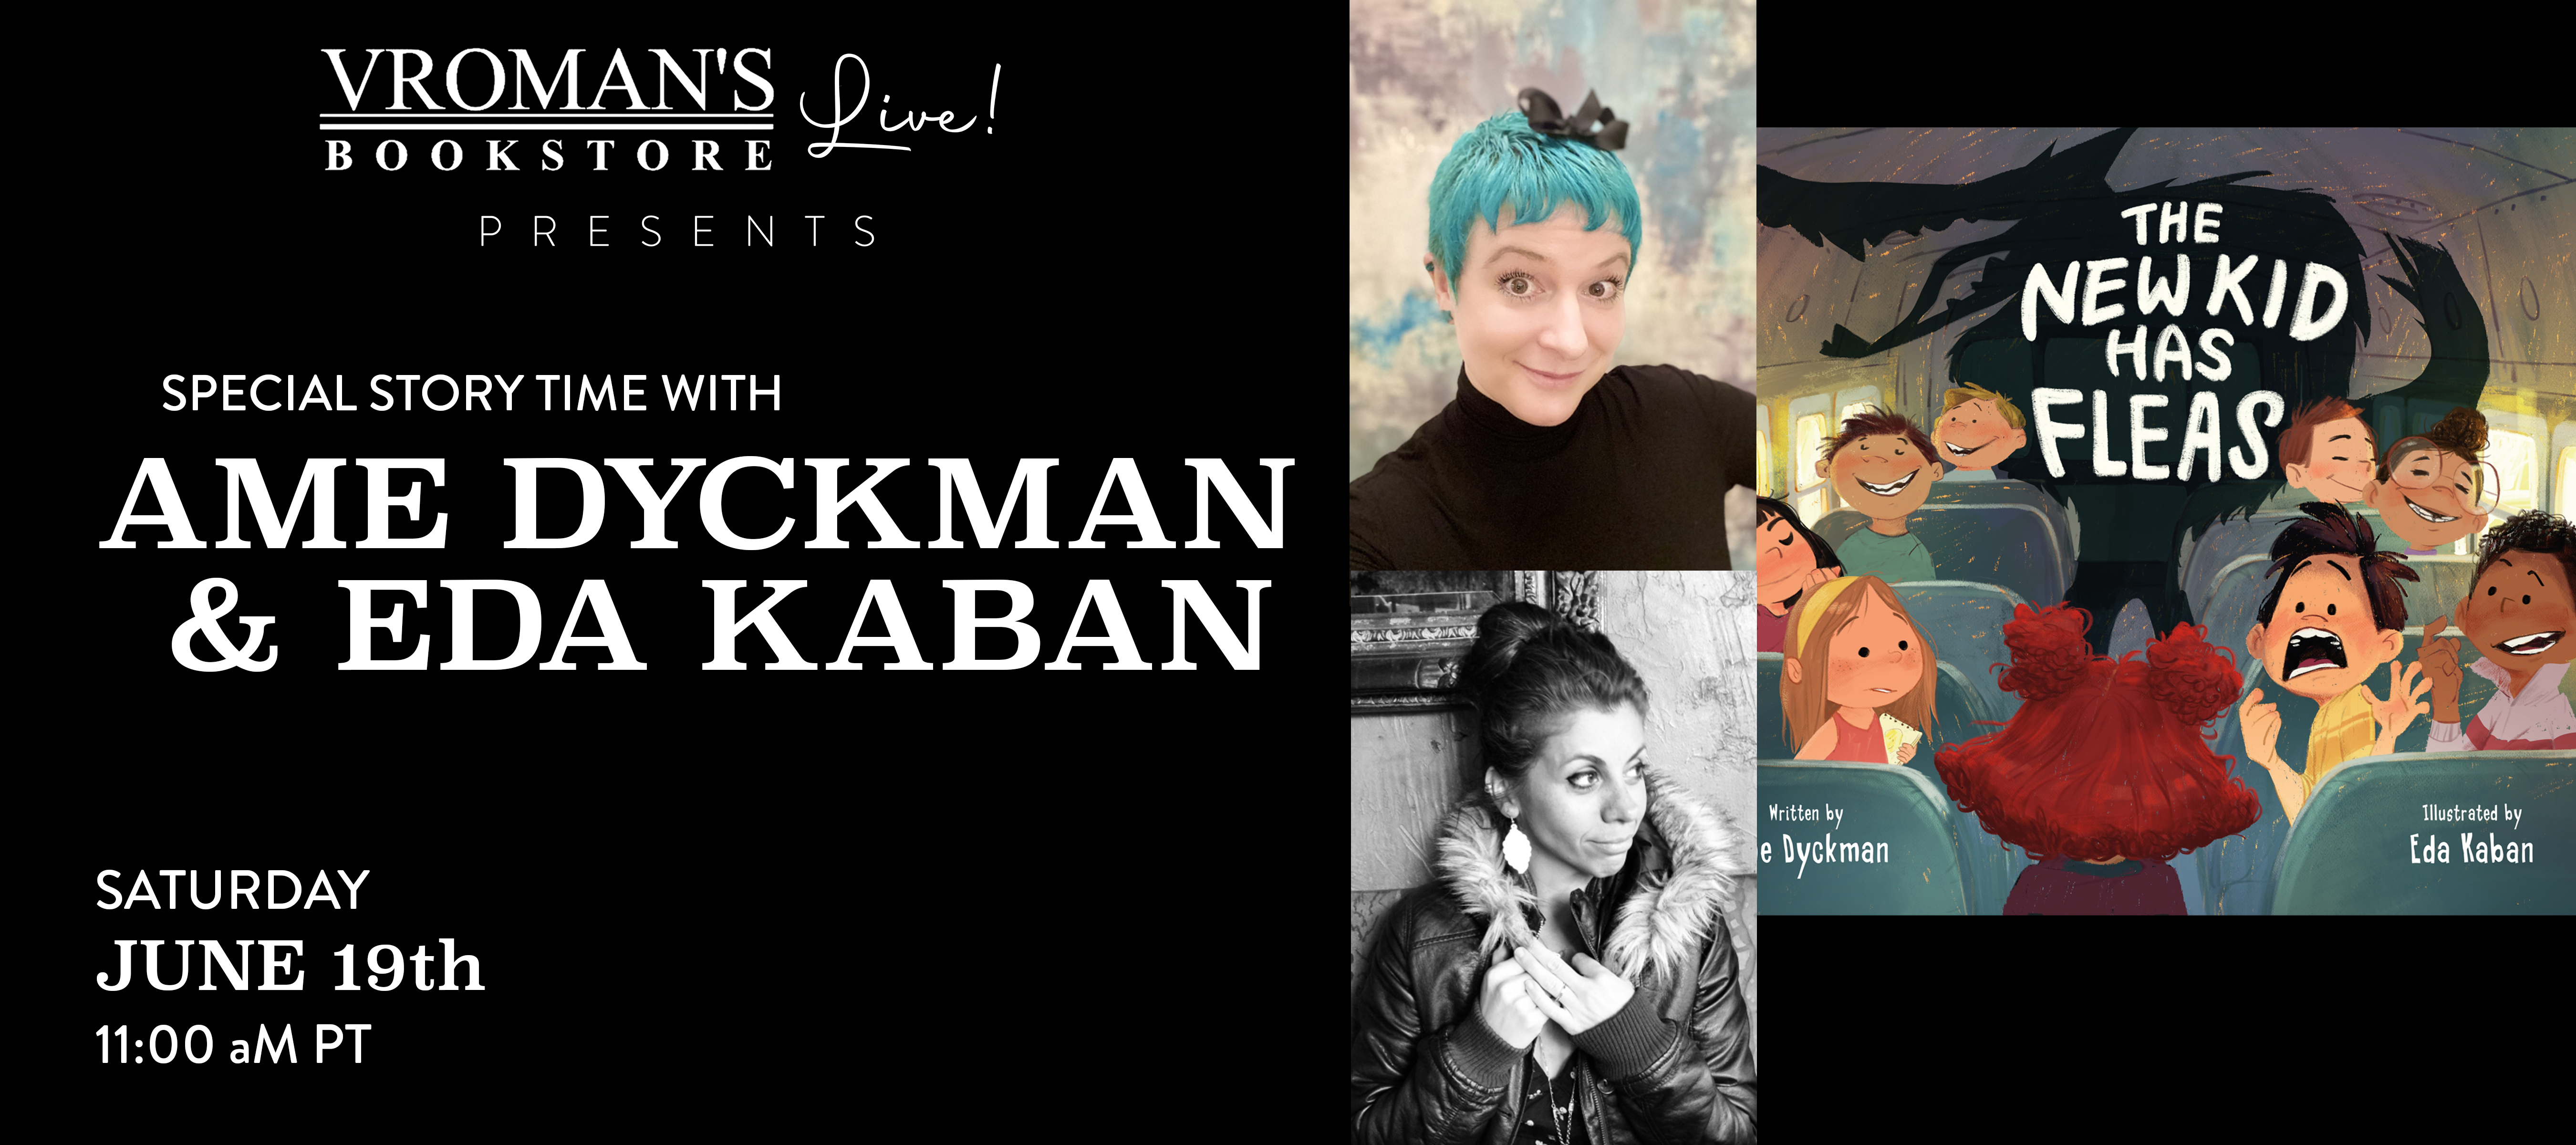 Vroman's Live - Special Story Time with Ame Dyckman & Eda Kaban presenting The New Kid Has Fleas on Saturday, June 19th at 11am on Crowdcast